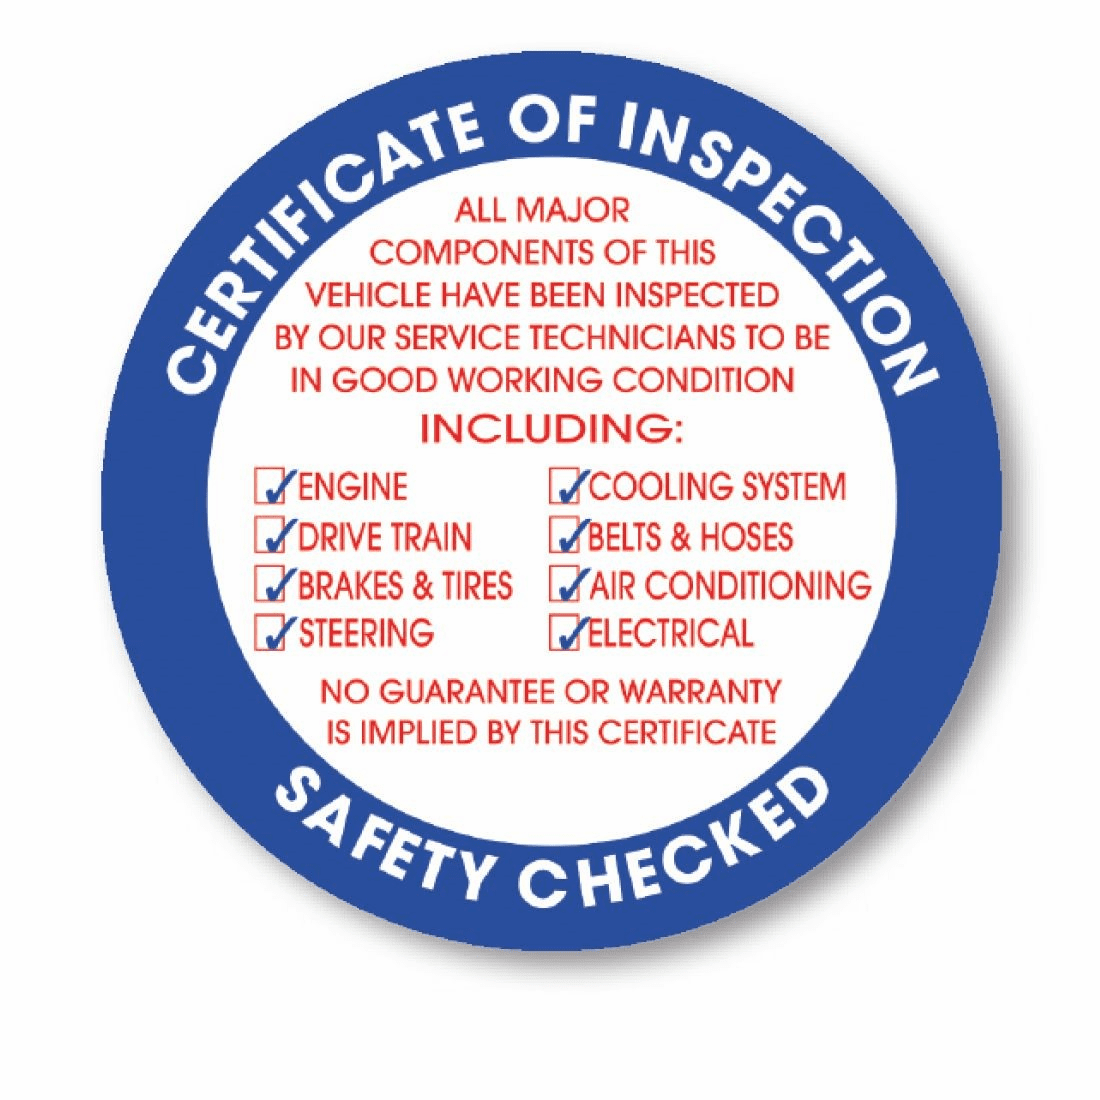 Face Adhesive Inspection Stickers